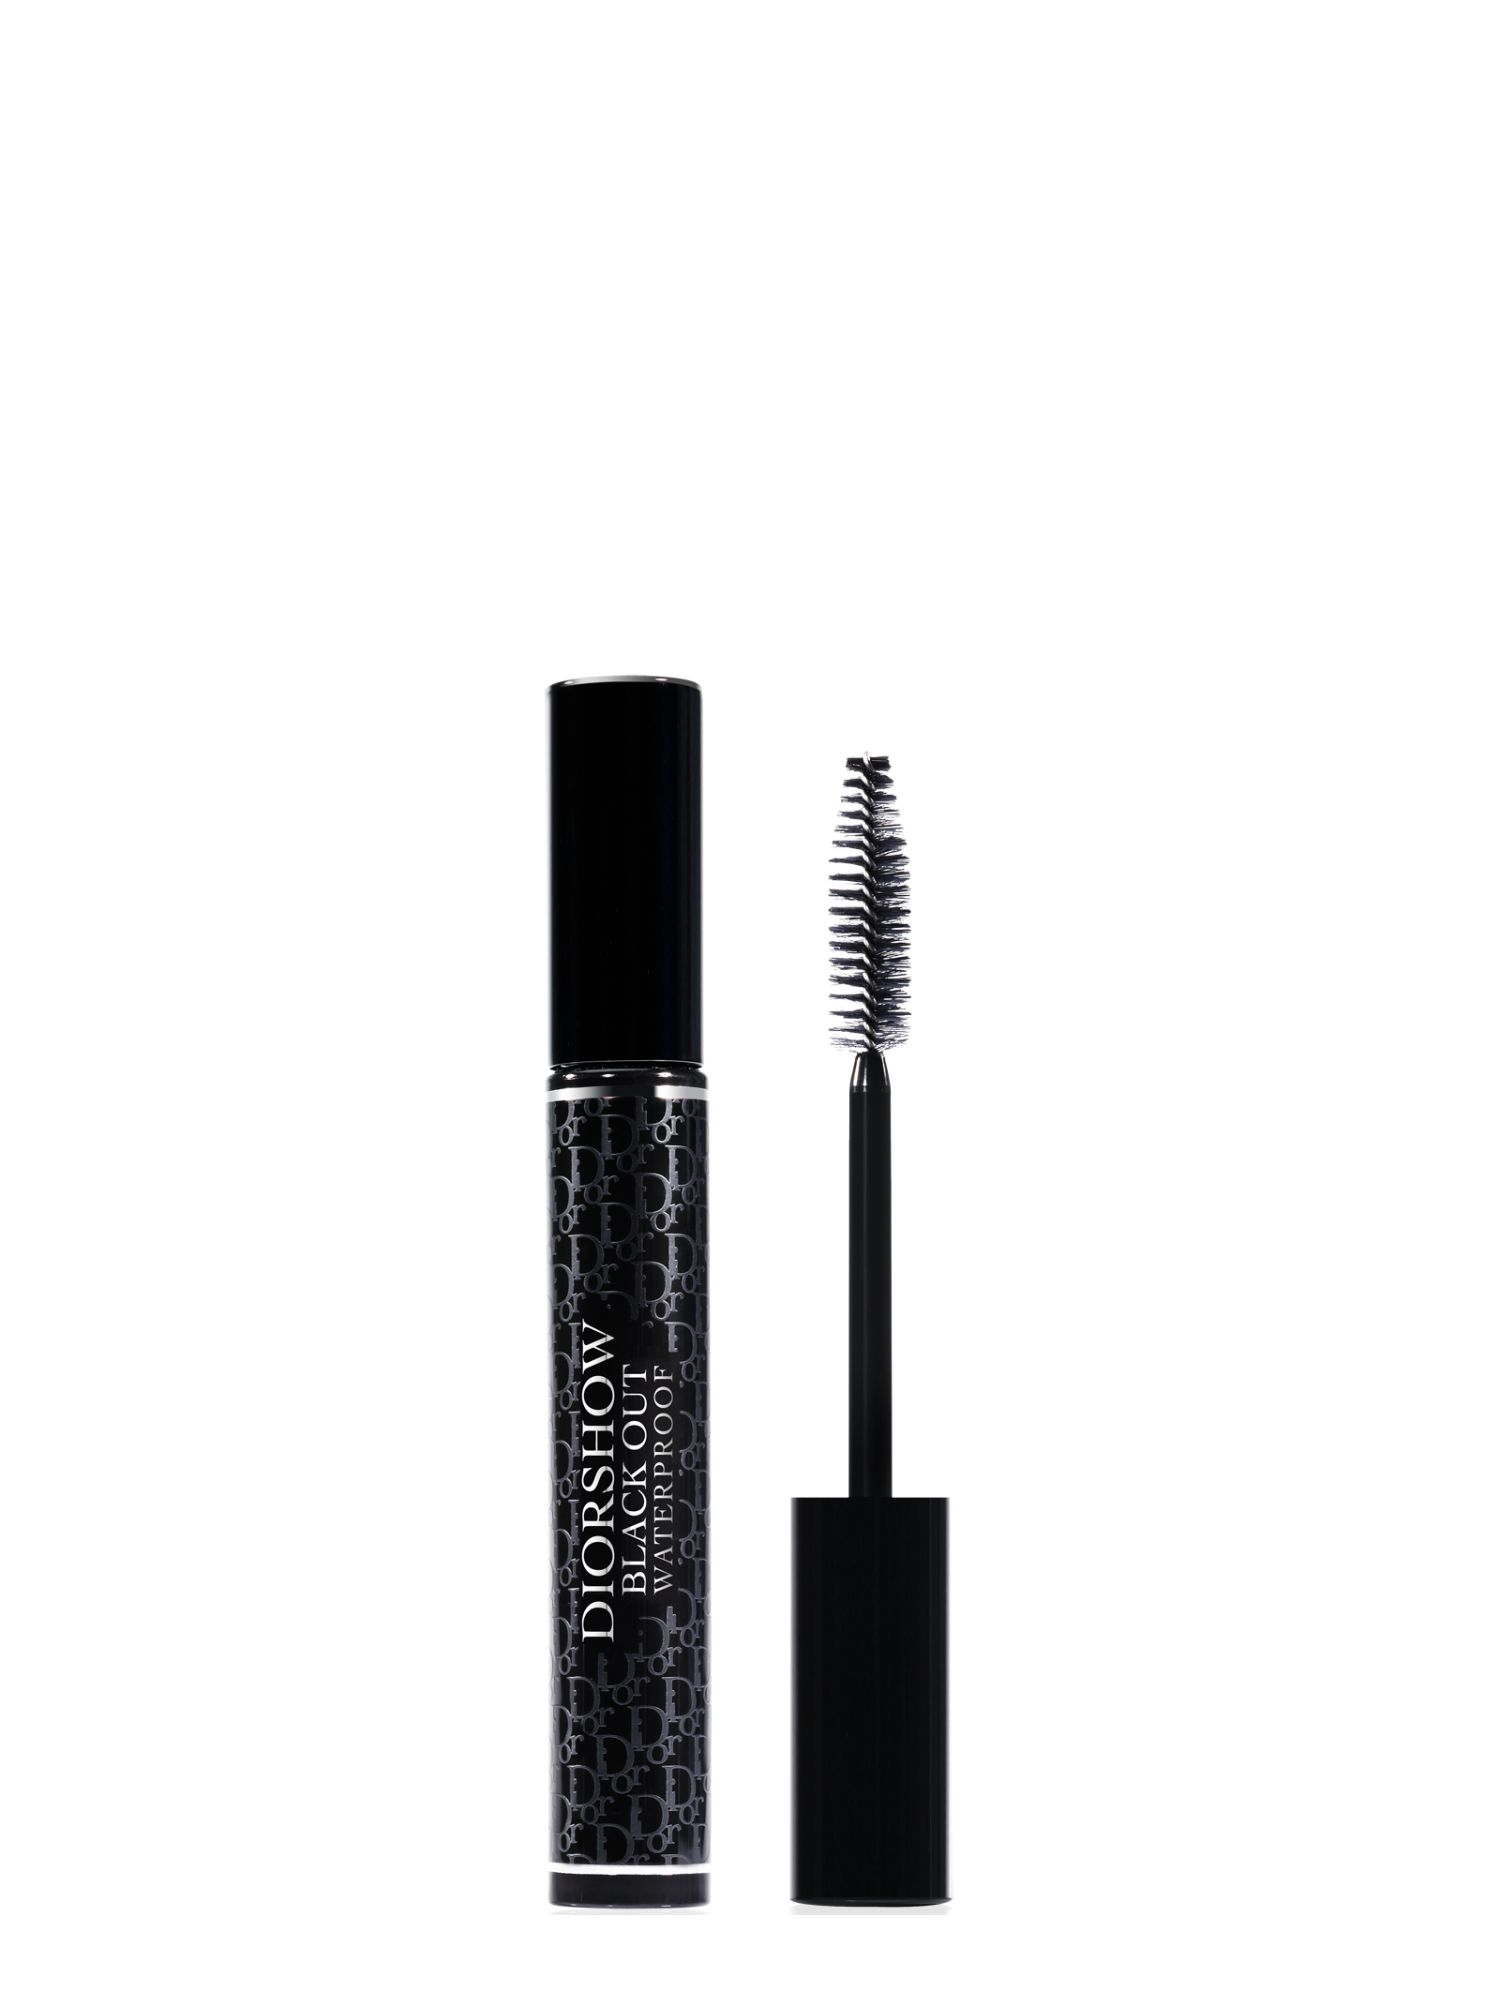 Diorshow Black Out Waterproof Volume Mascara